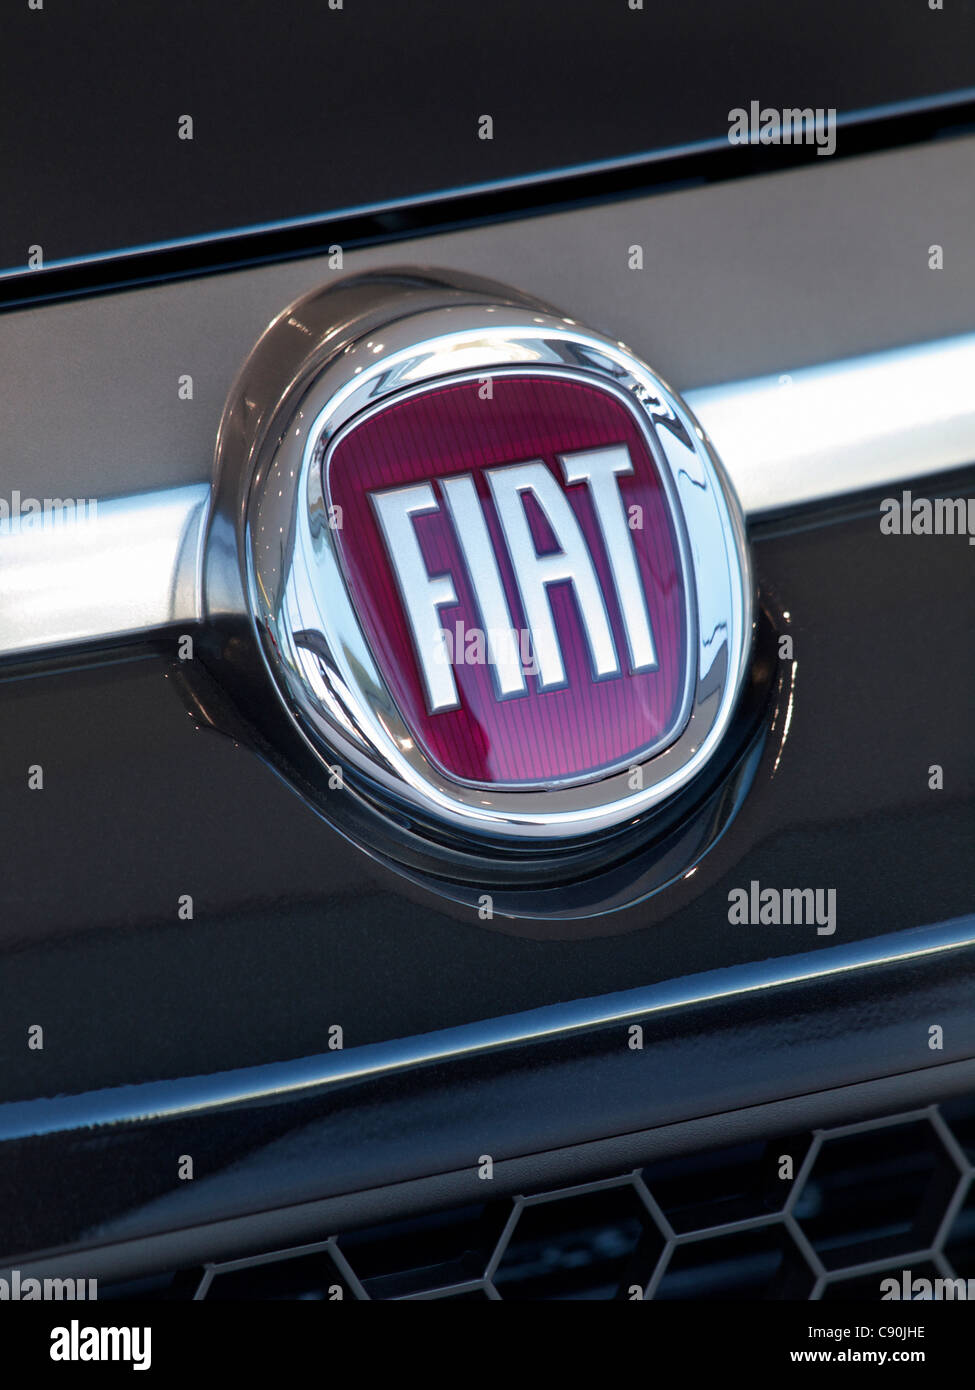 fiat logo badge on the front of a fiat punto car fiat is an acronym stock photo 39967242 alamy. Black Bedroom Furniture Sets. Home Design Ideas